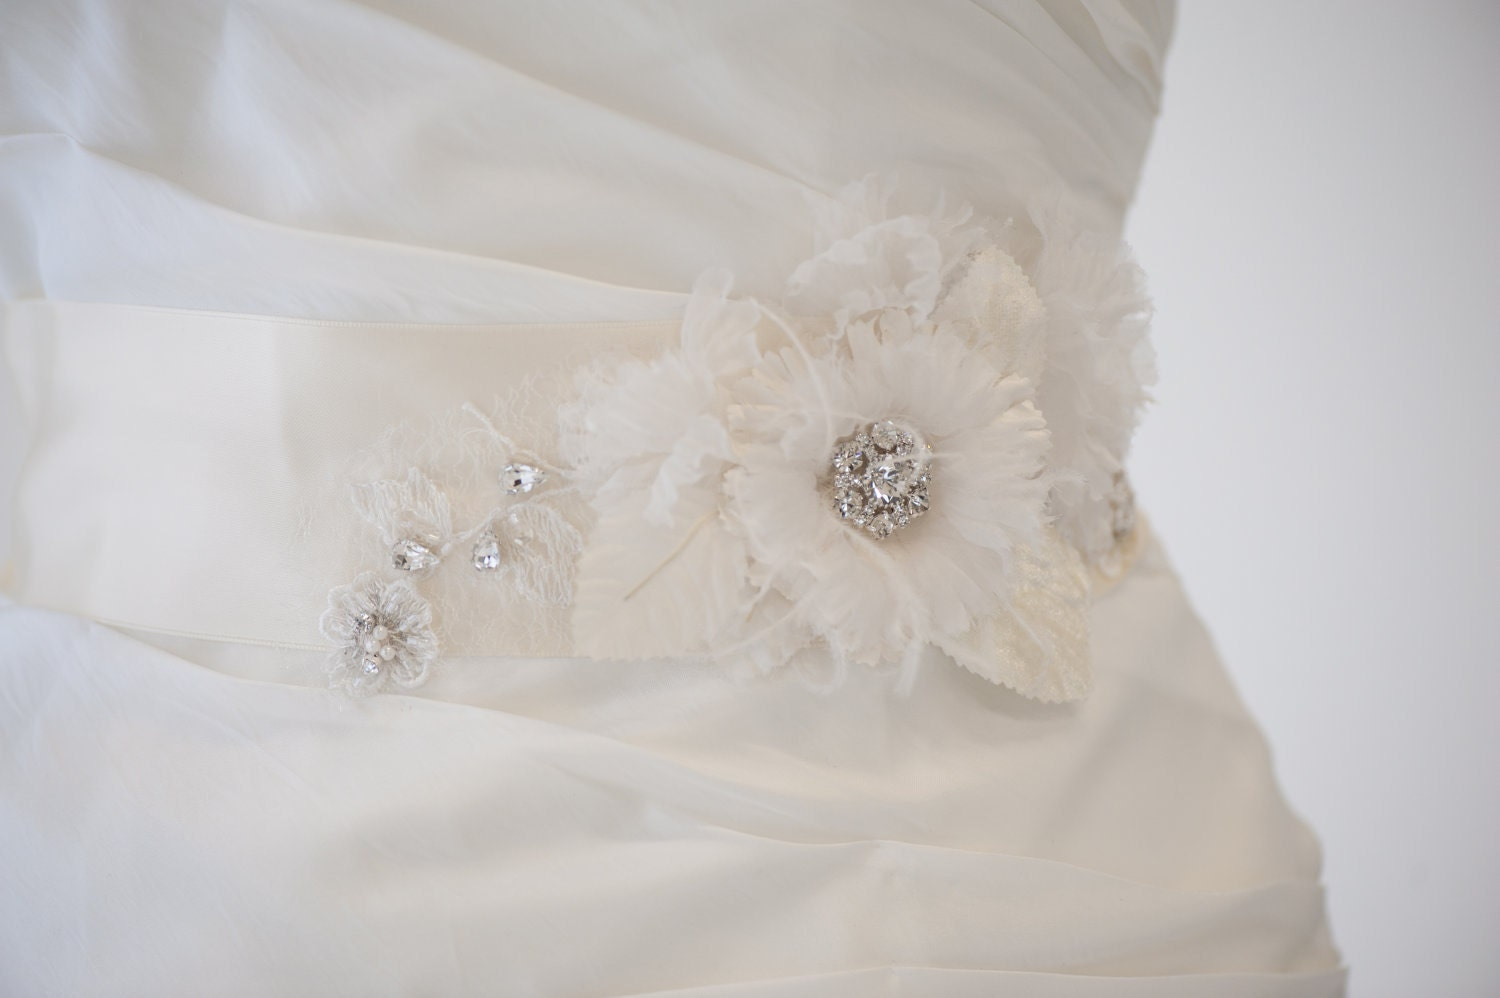 Bridal gown sash wedding dress sash ivory by powderbluebijoux for Ivory wedding dress sash